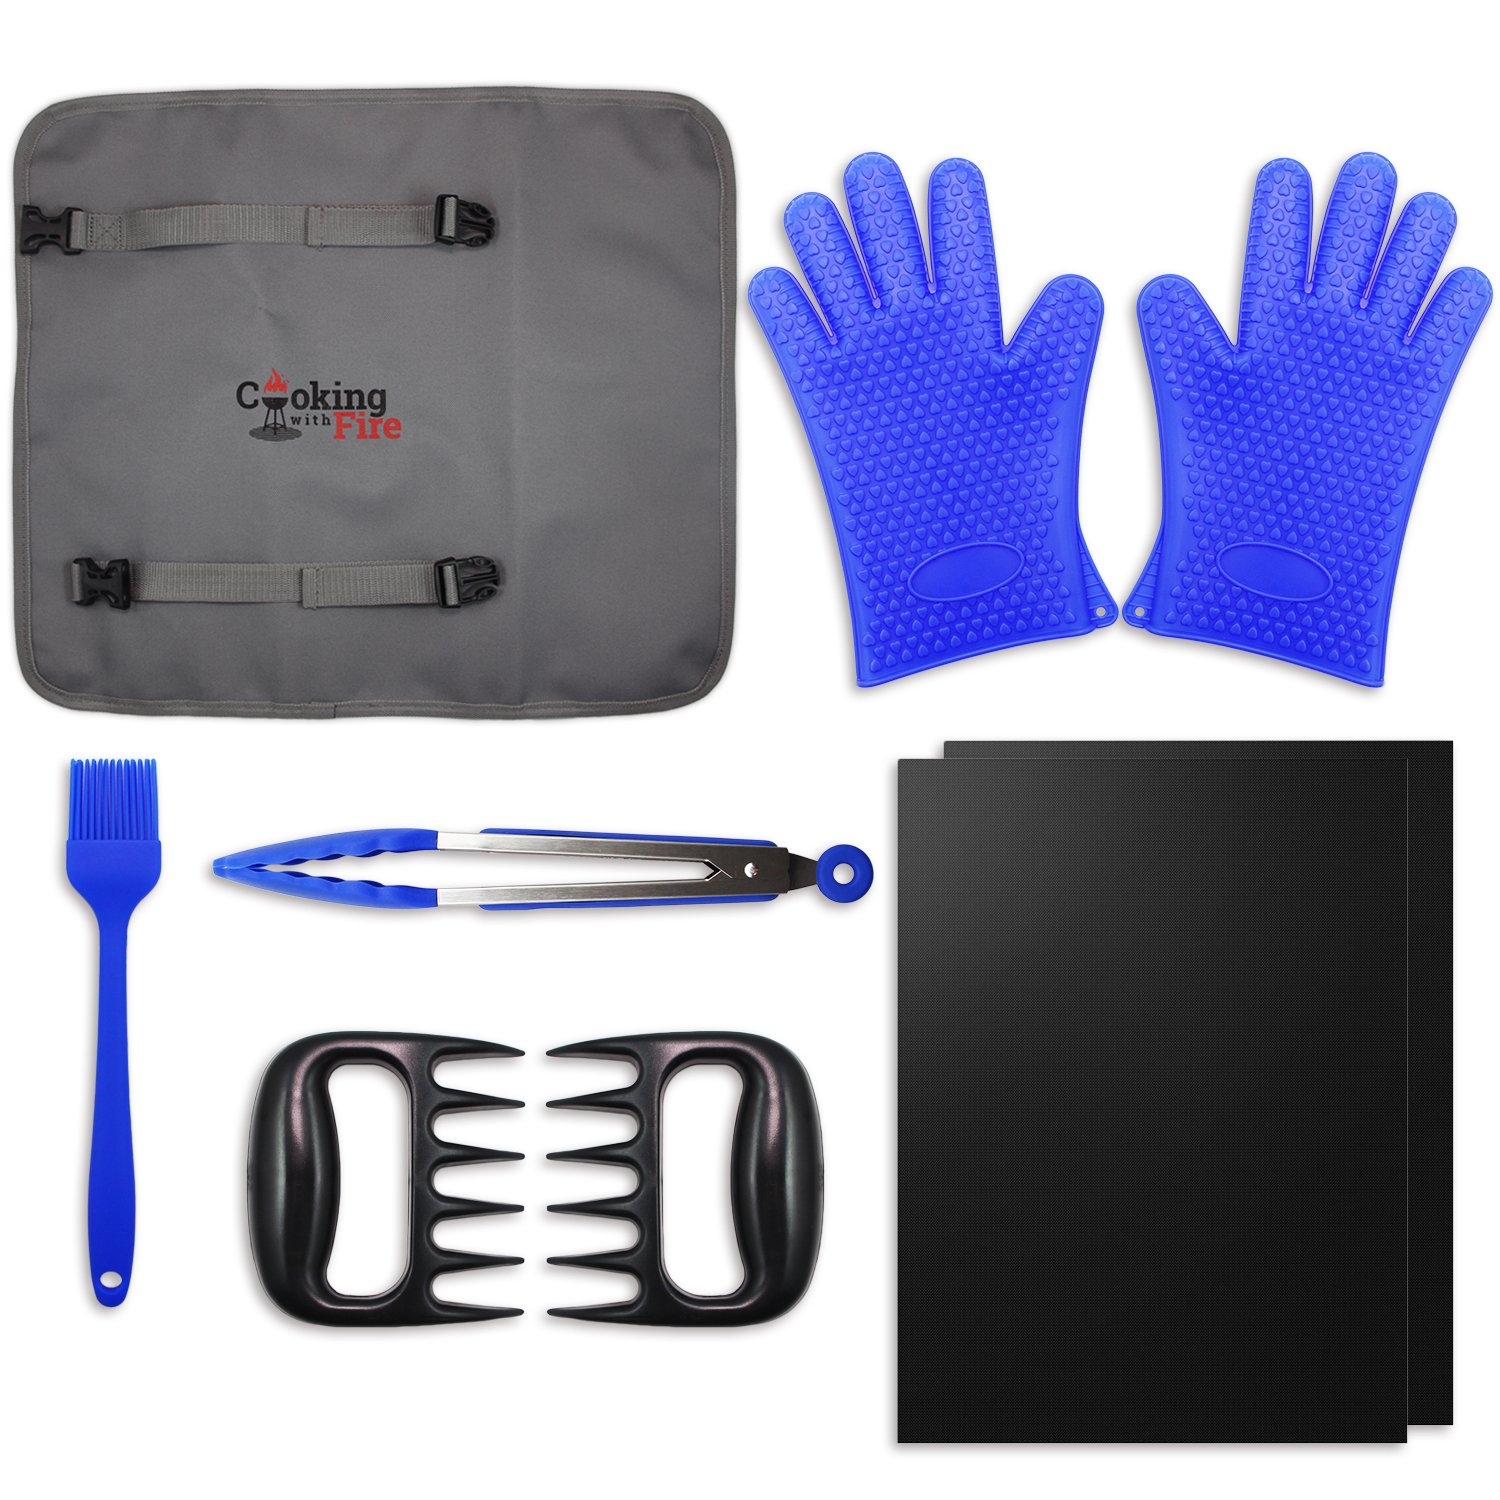 8 Piece Ultimate Grill / Smoker Set - Non-Stick Grilling Mats, Silicone Grilling Gloves, Meat Shredder Claws, Basting Brush, and Tongs with Reusable Travel / Storage Tote Mischief & Muse